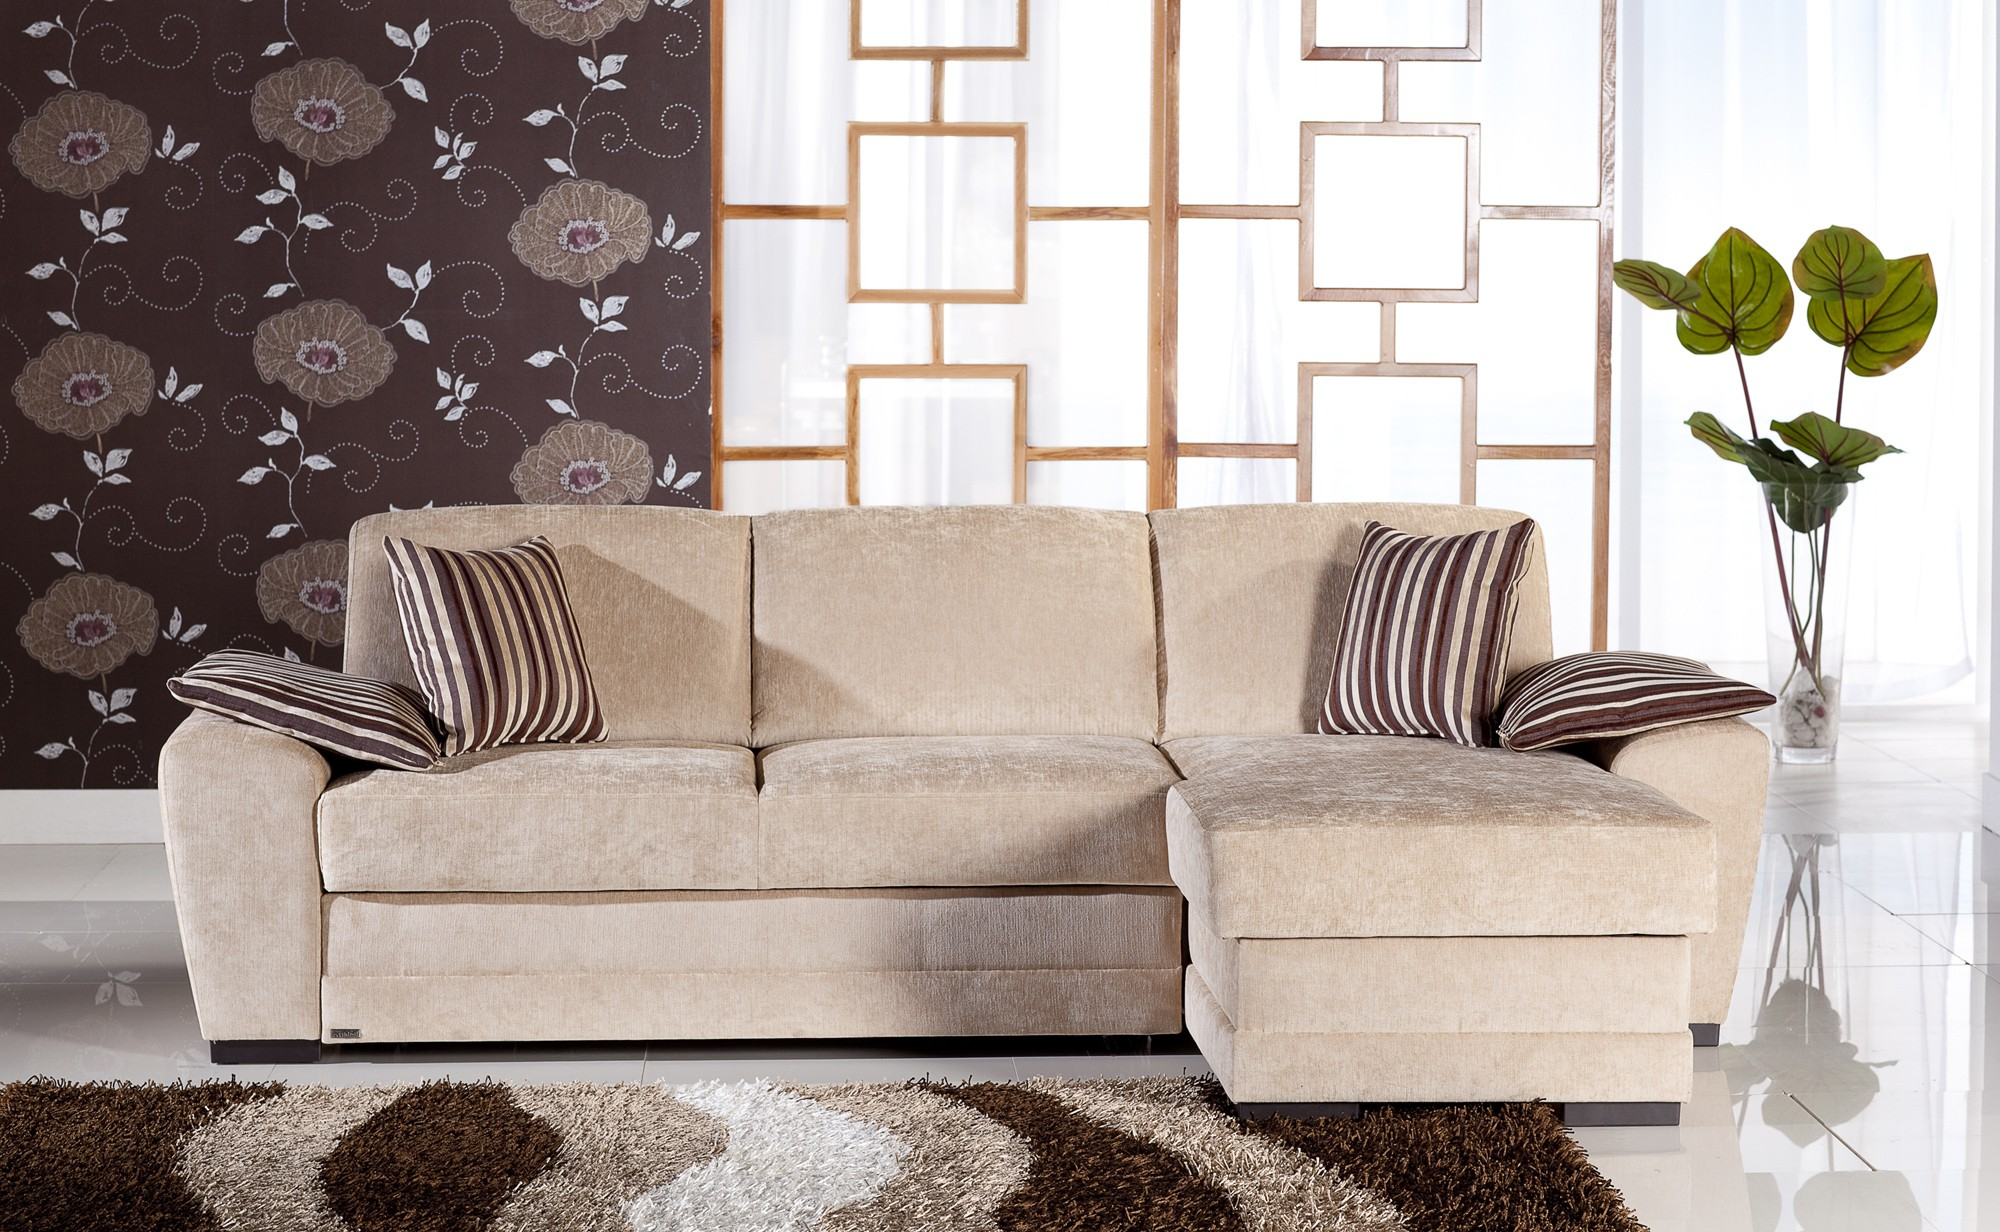 Beau Simple Beige Soft Sectional Sofa Sleepers With Stripe Cushions Flower Walls  Green Plants Two Tones Rug